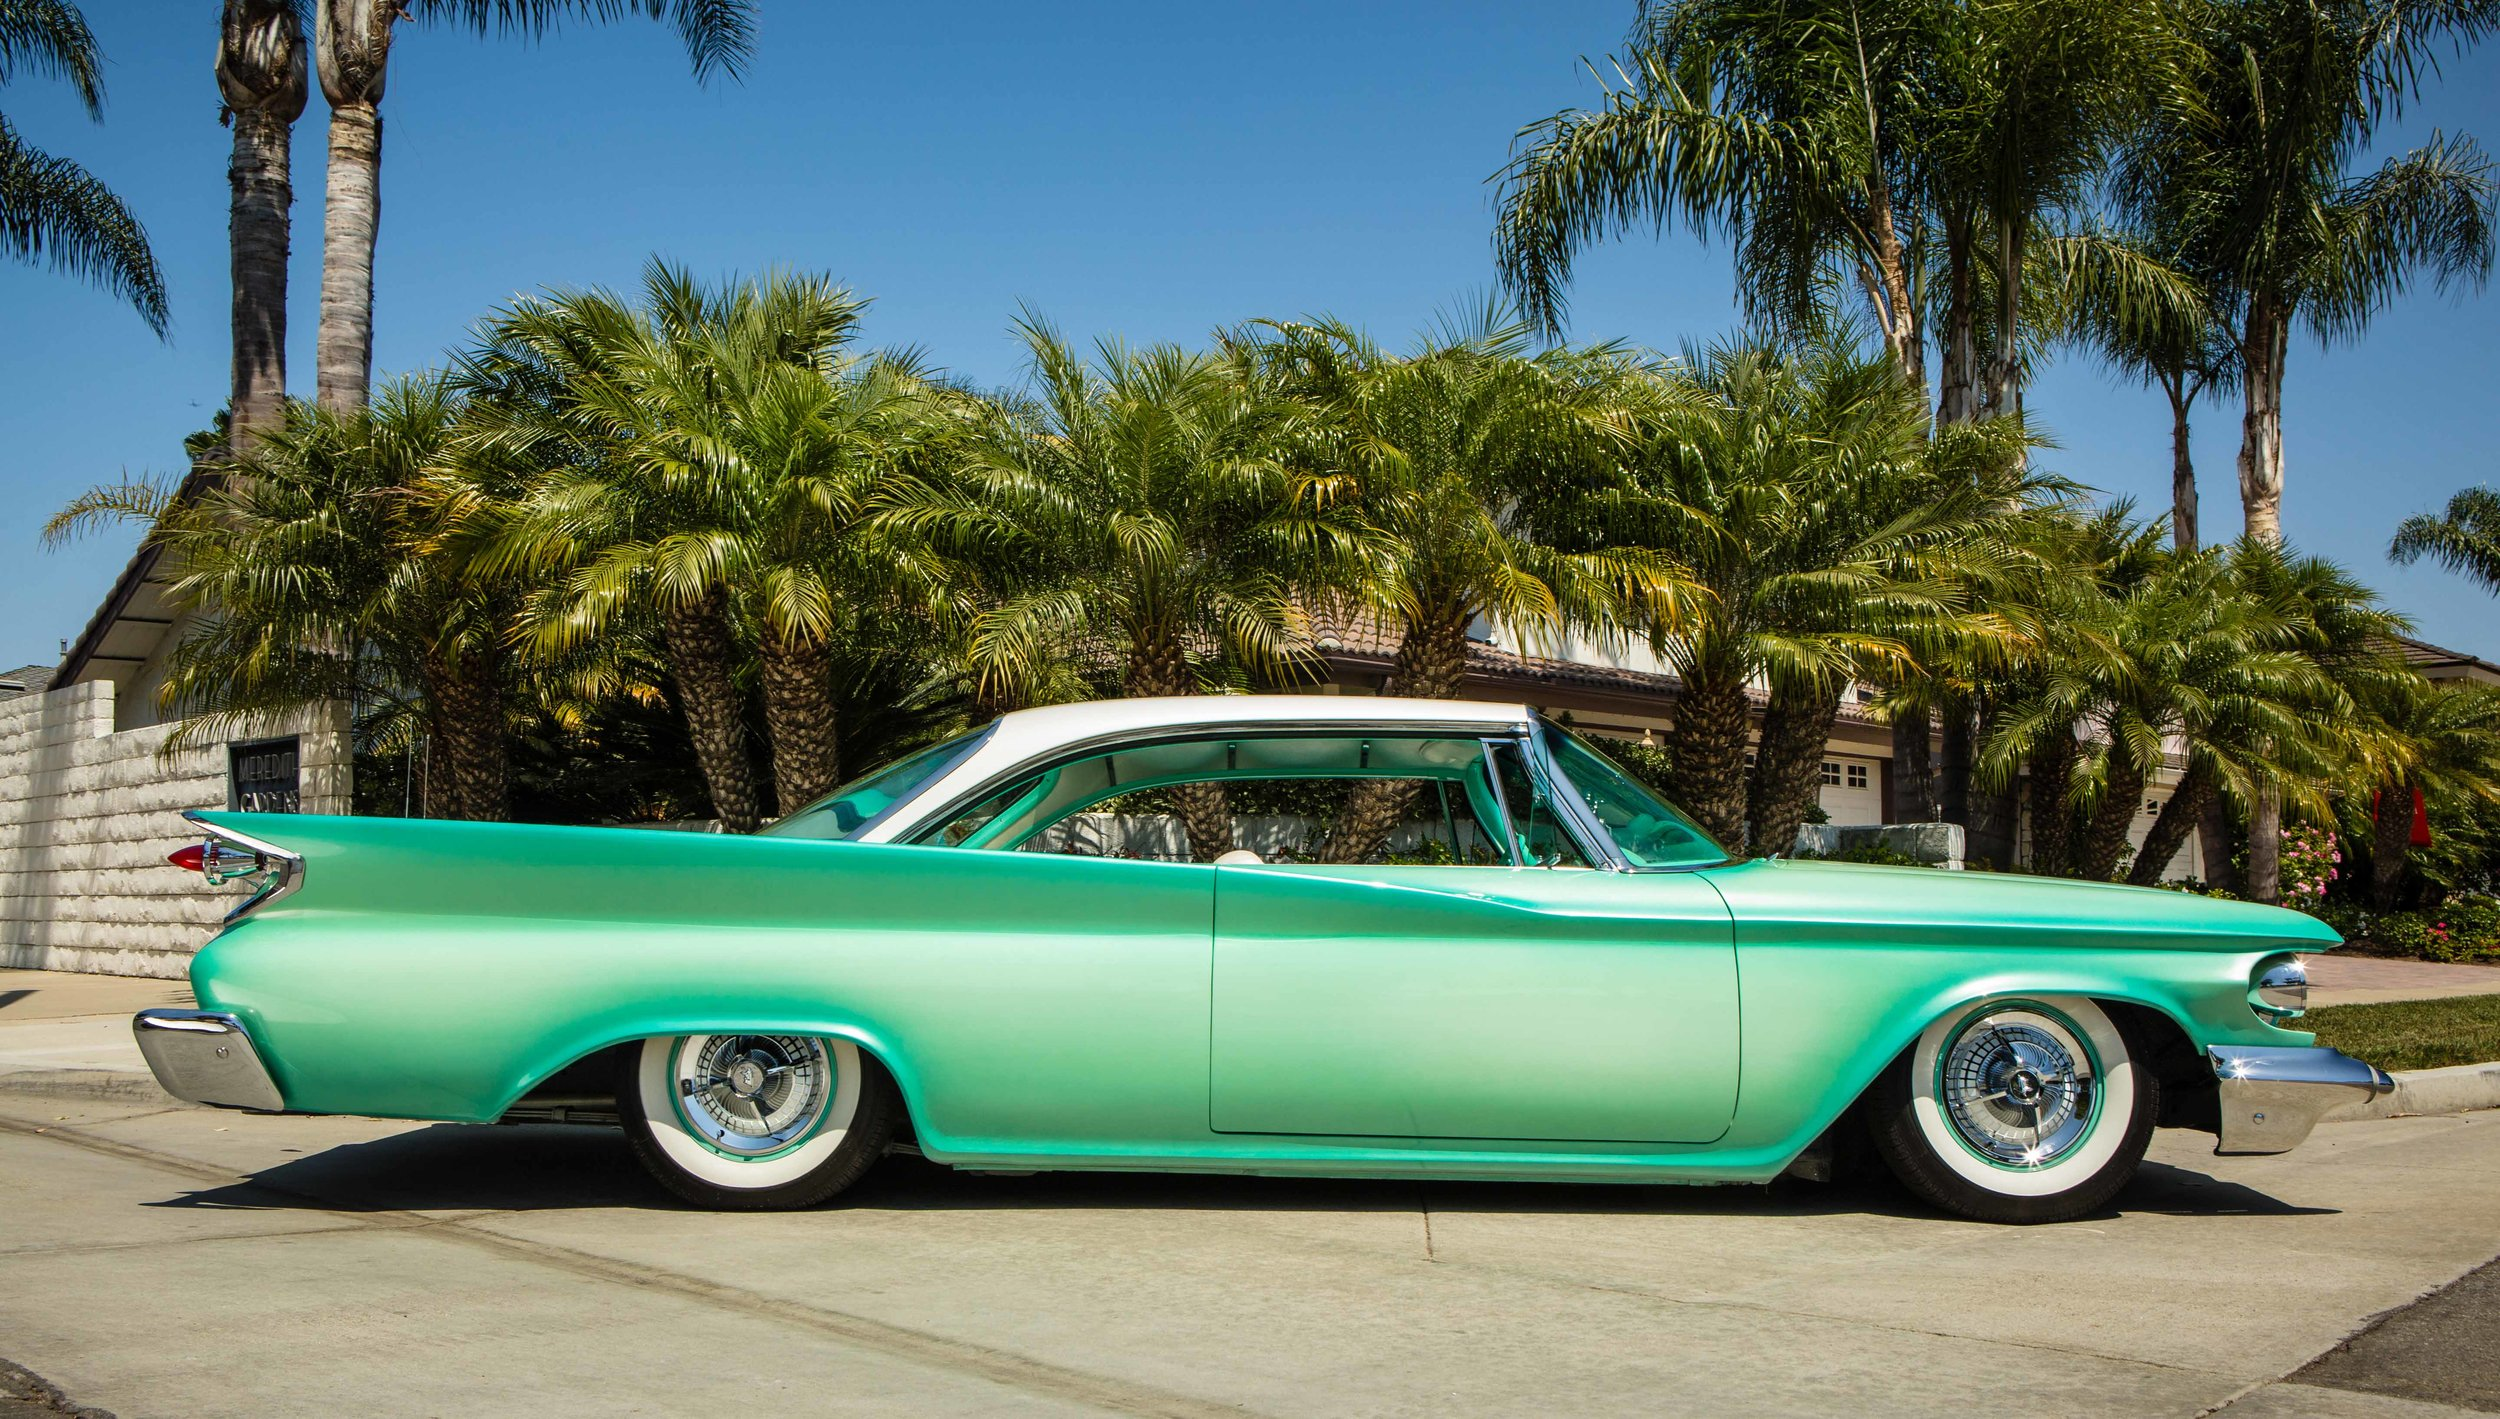 Anaheim Rod and Custom 1960 Desoto Island Girl_-5.jpg